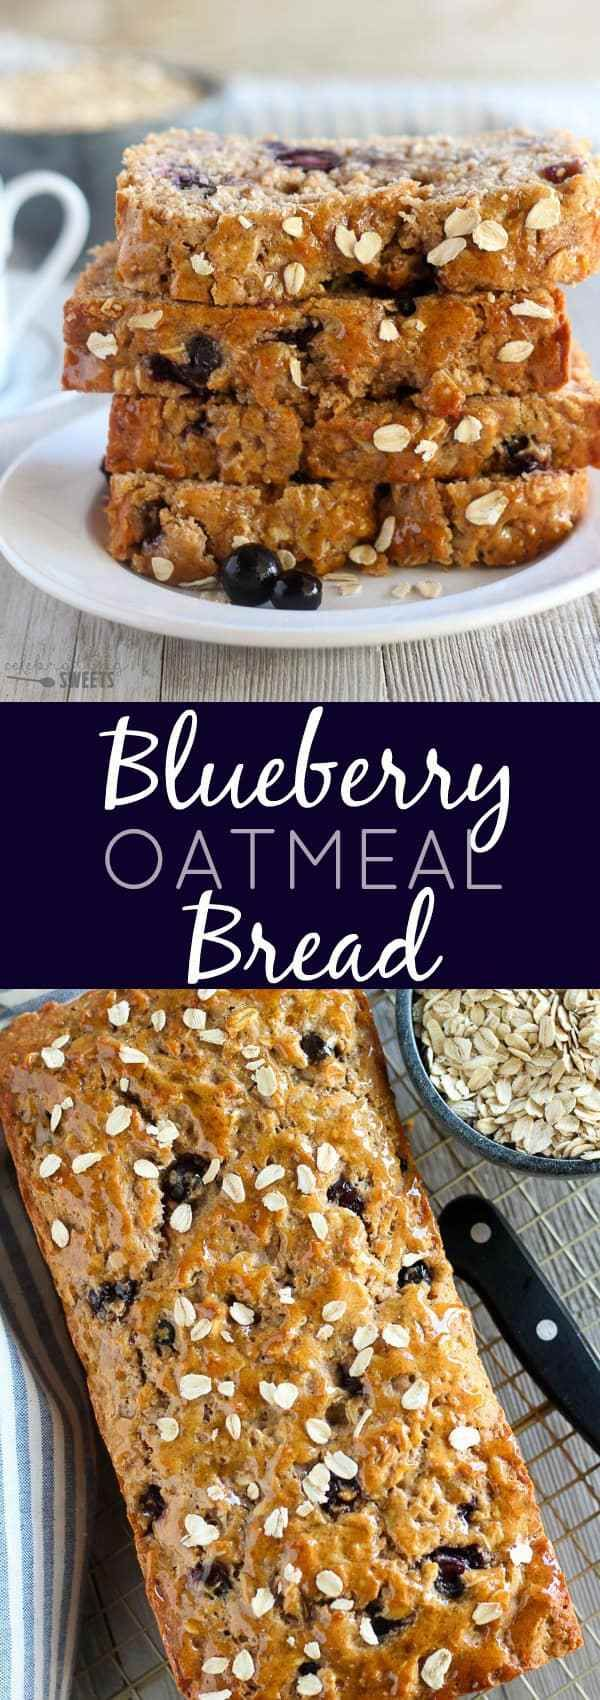 Blueberry Oatmeal Bread Whole grain oatmeal quick bread